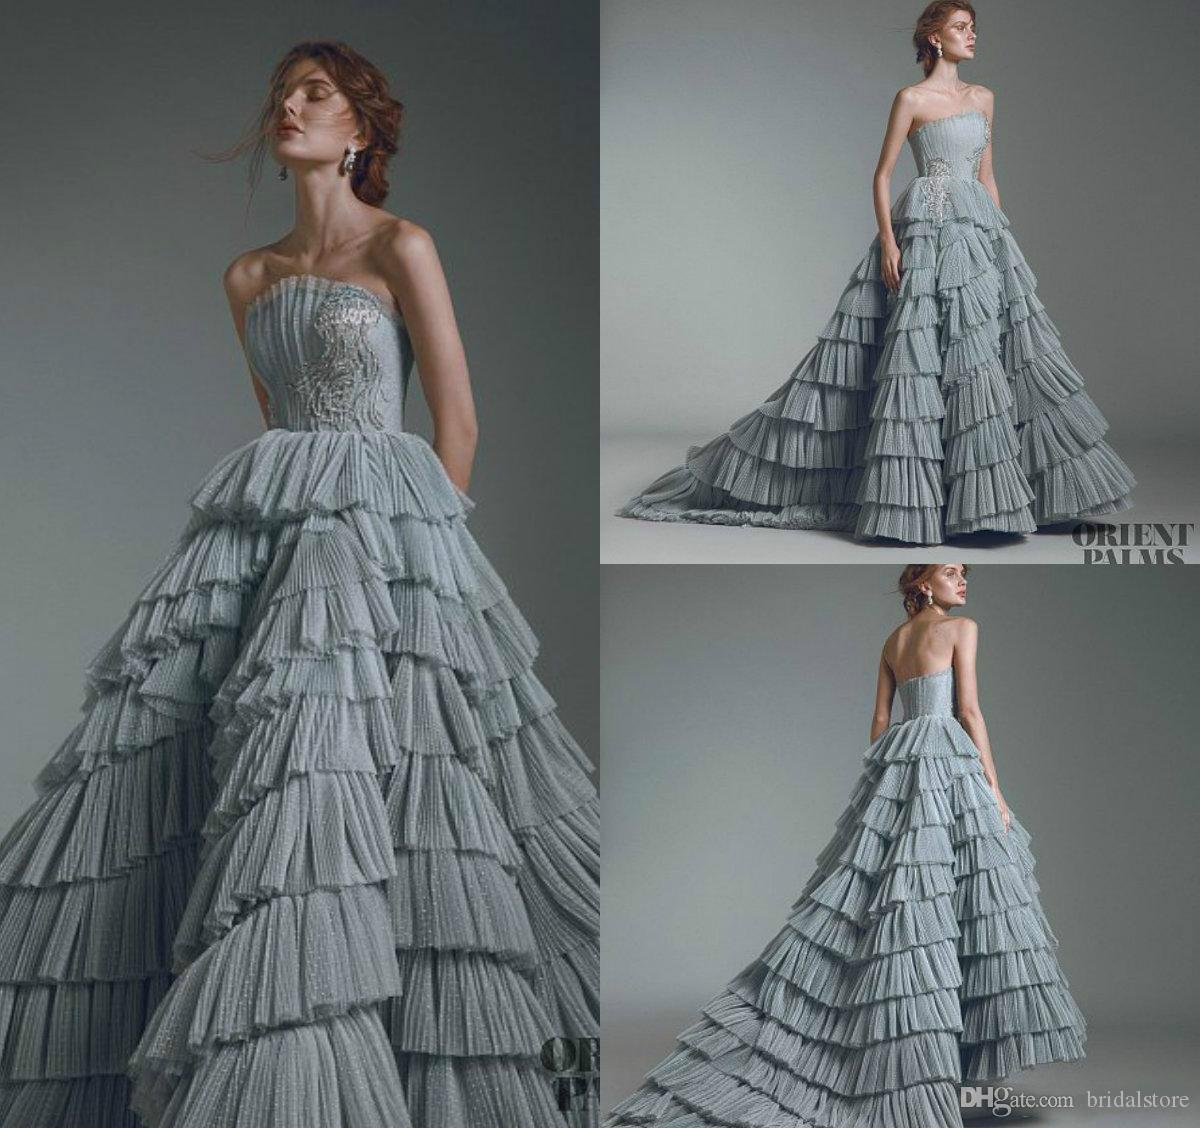 819cd6ea07f Dusty Grey Luxury Prom Dresses Strapless Puffy Tulle Ball Gown Tiered  Ruffles Skirts Elegant Evening Formal Party Dress Robes De Soirée 2018  Vintage Prom ...